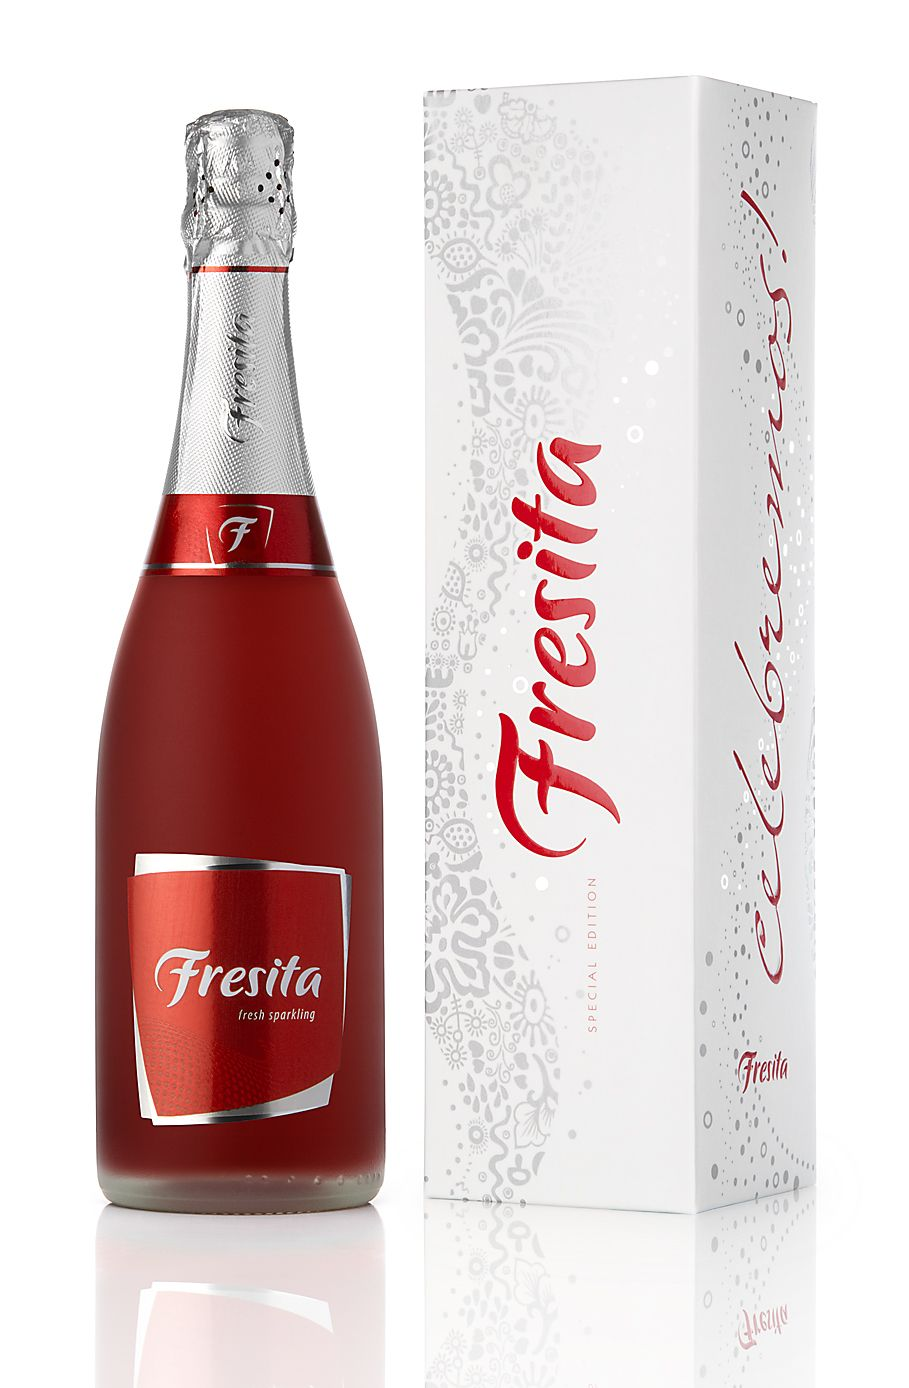 Fresita Bottle Label Design Wine Label Design Wine Packaging